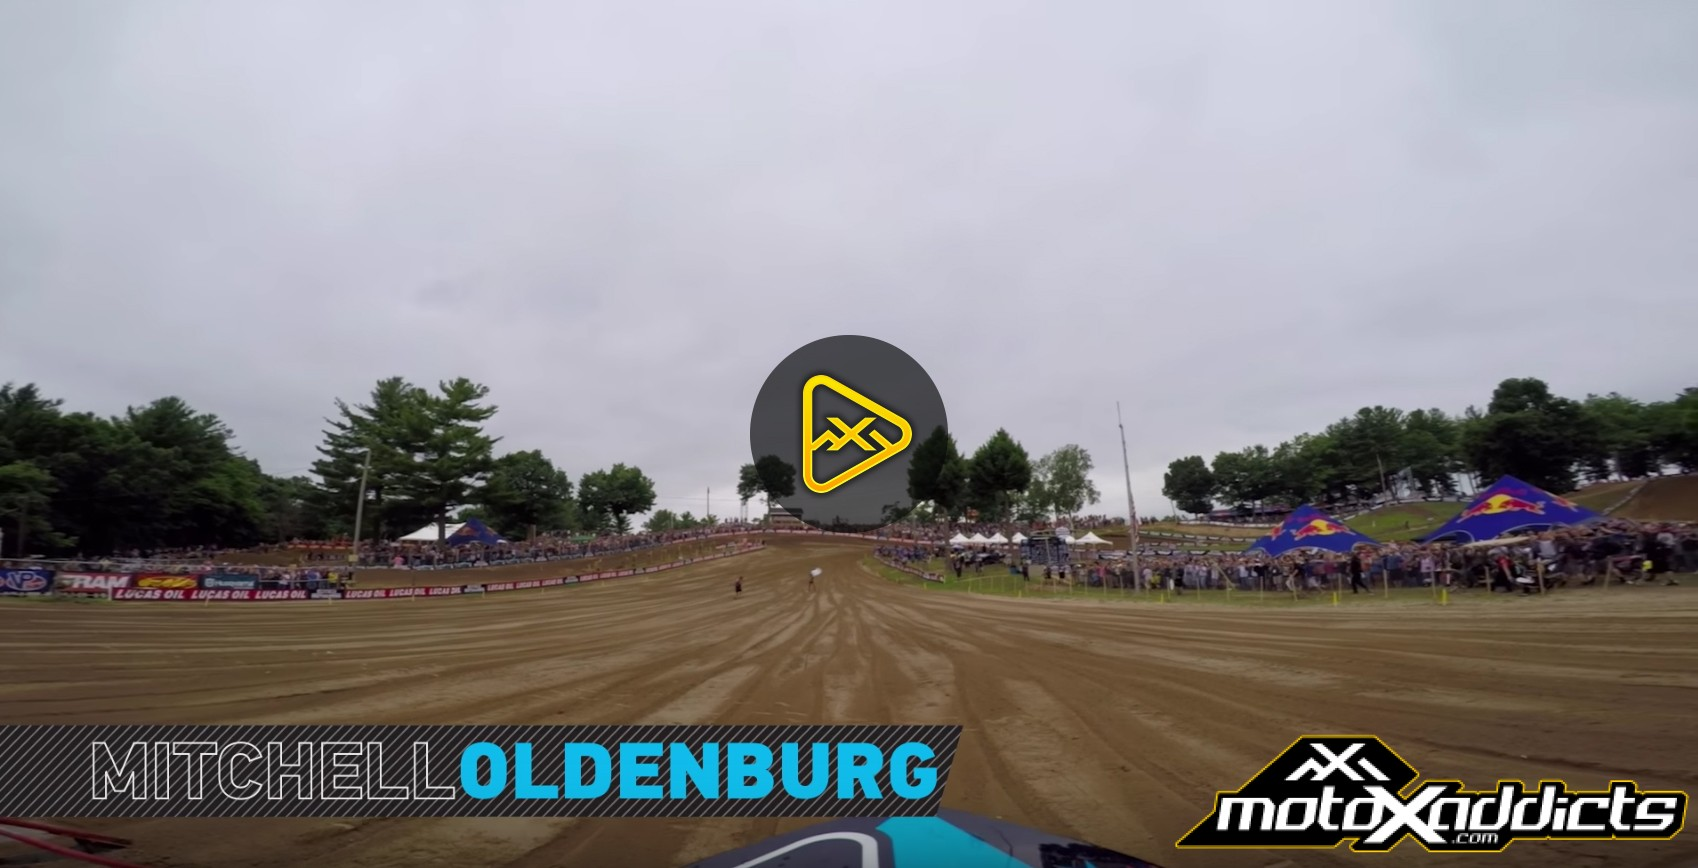 GoPro Helmet Cam: Mitchell Oldenburg at 2016 Southwick National